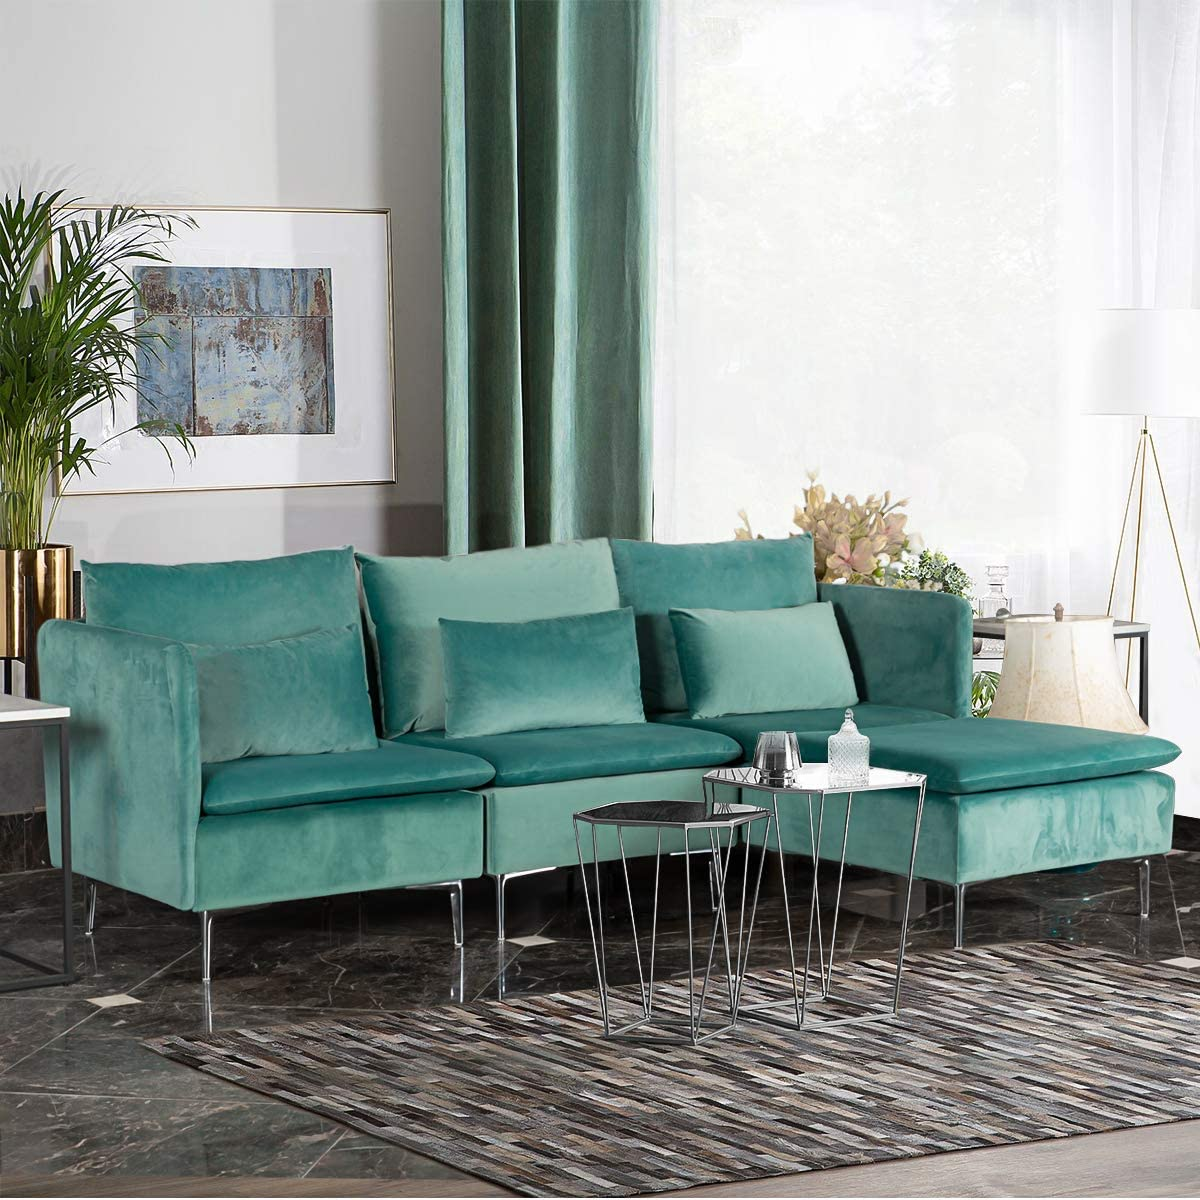 10 Best Sectional Couches Under $600